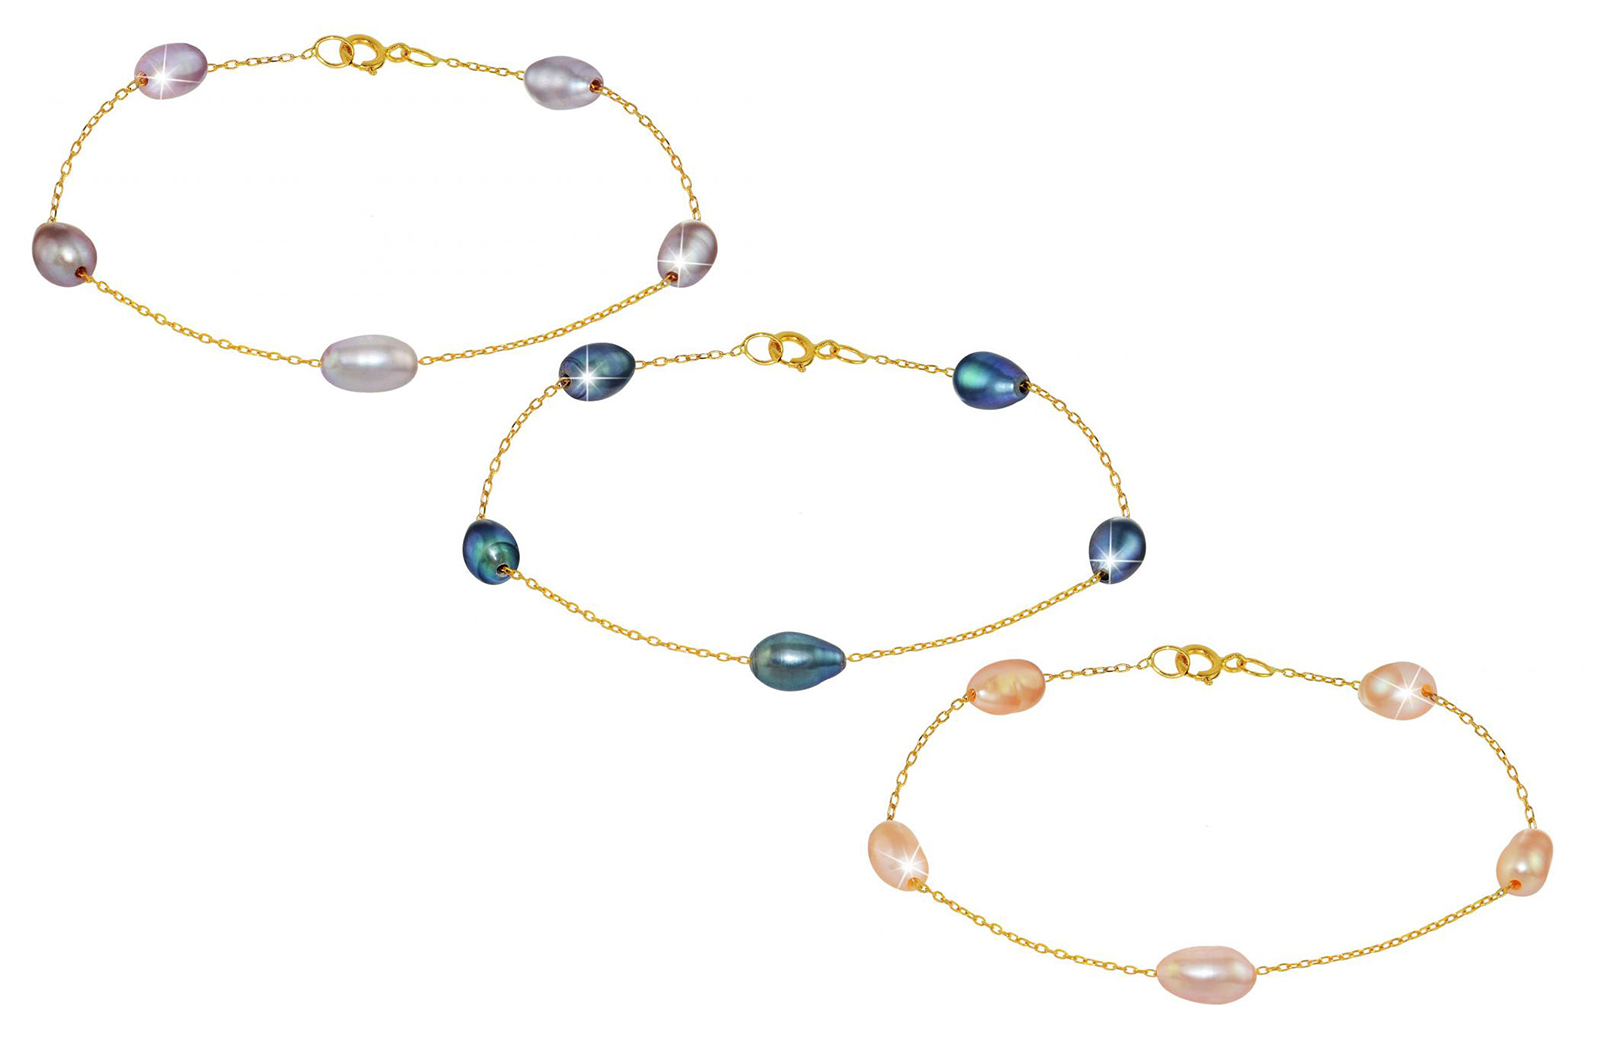 Vera Perla 18K Gold Genuine Pearls Bracelet - 3 pcs.